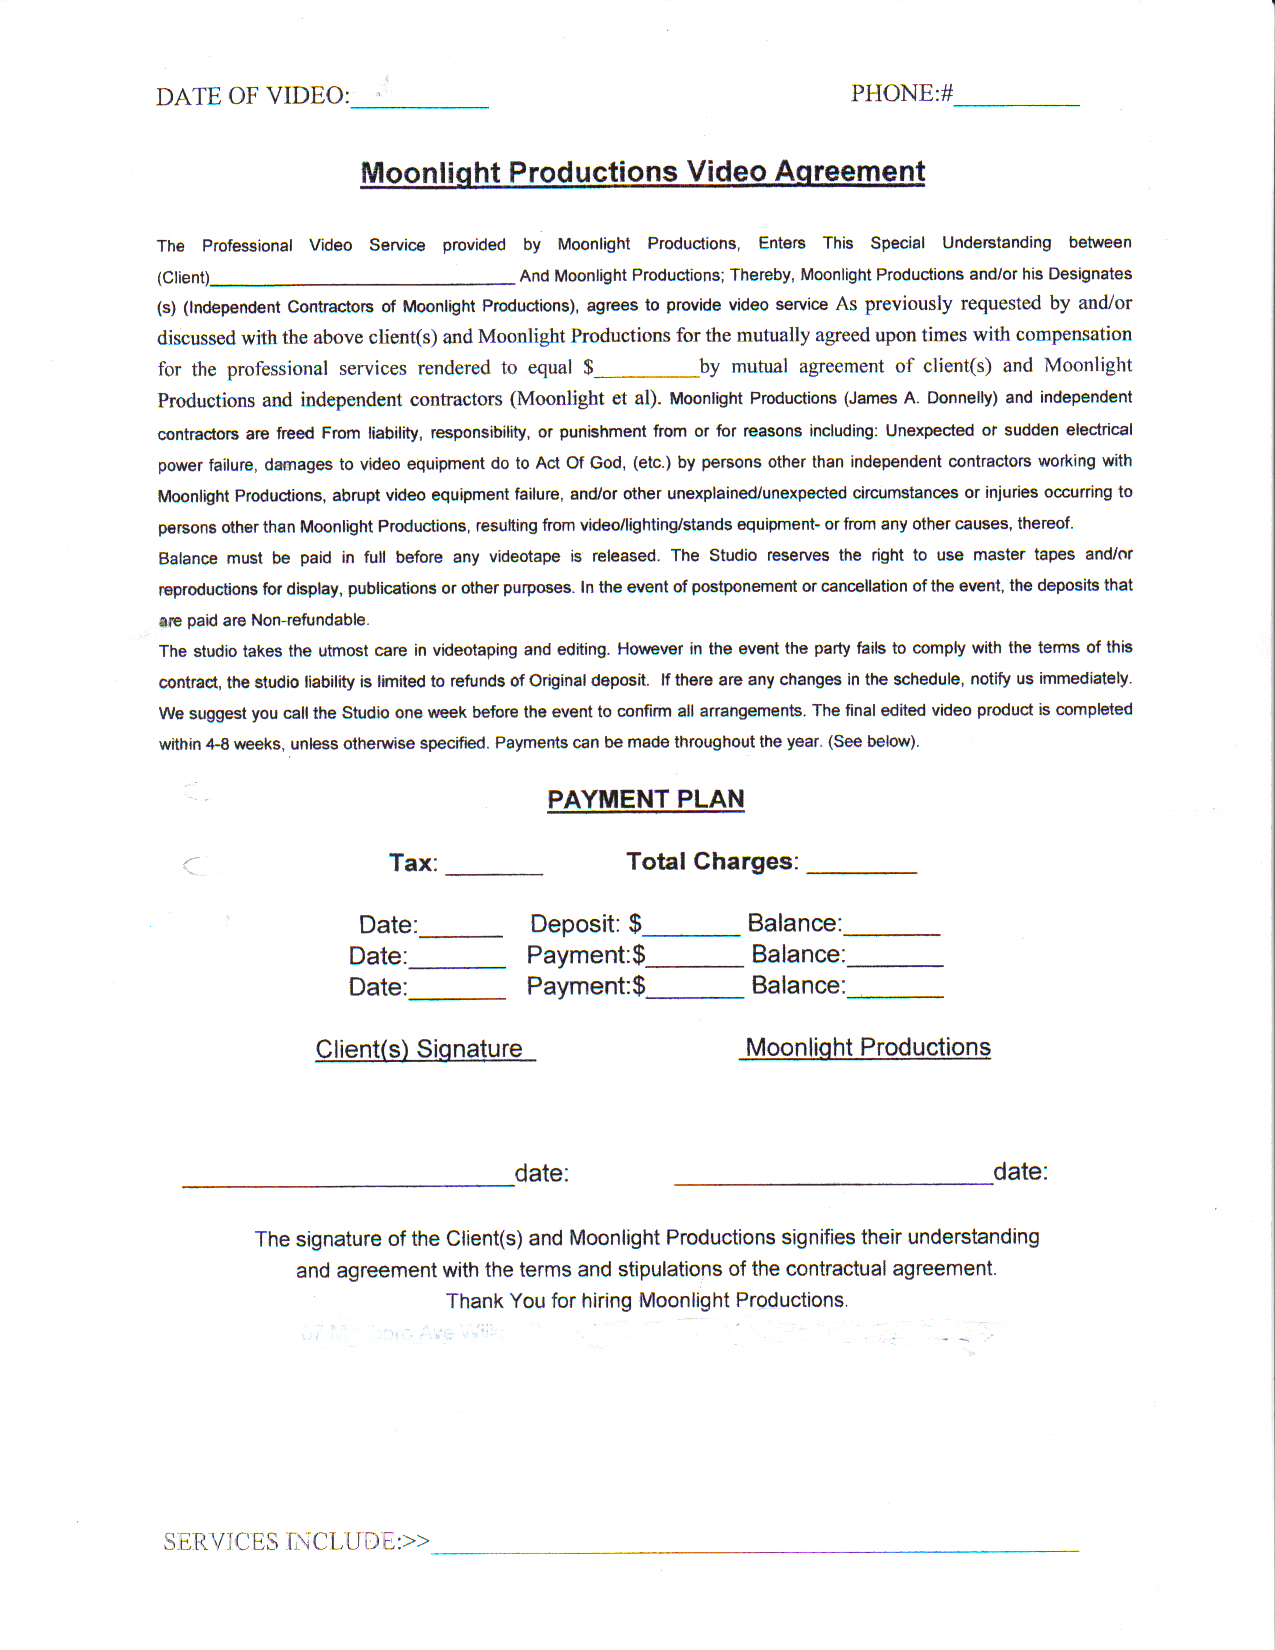 Wedding photography contract doc Wedding photography - Masterwork Weddings